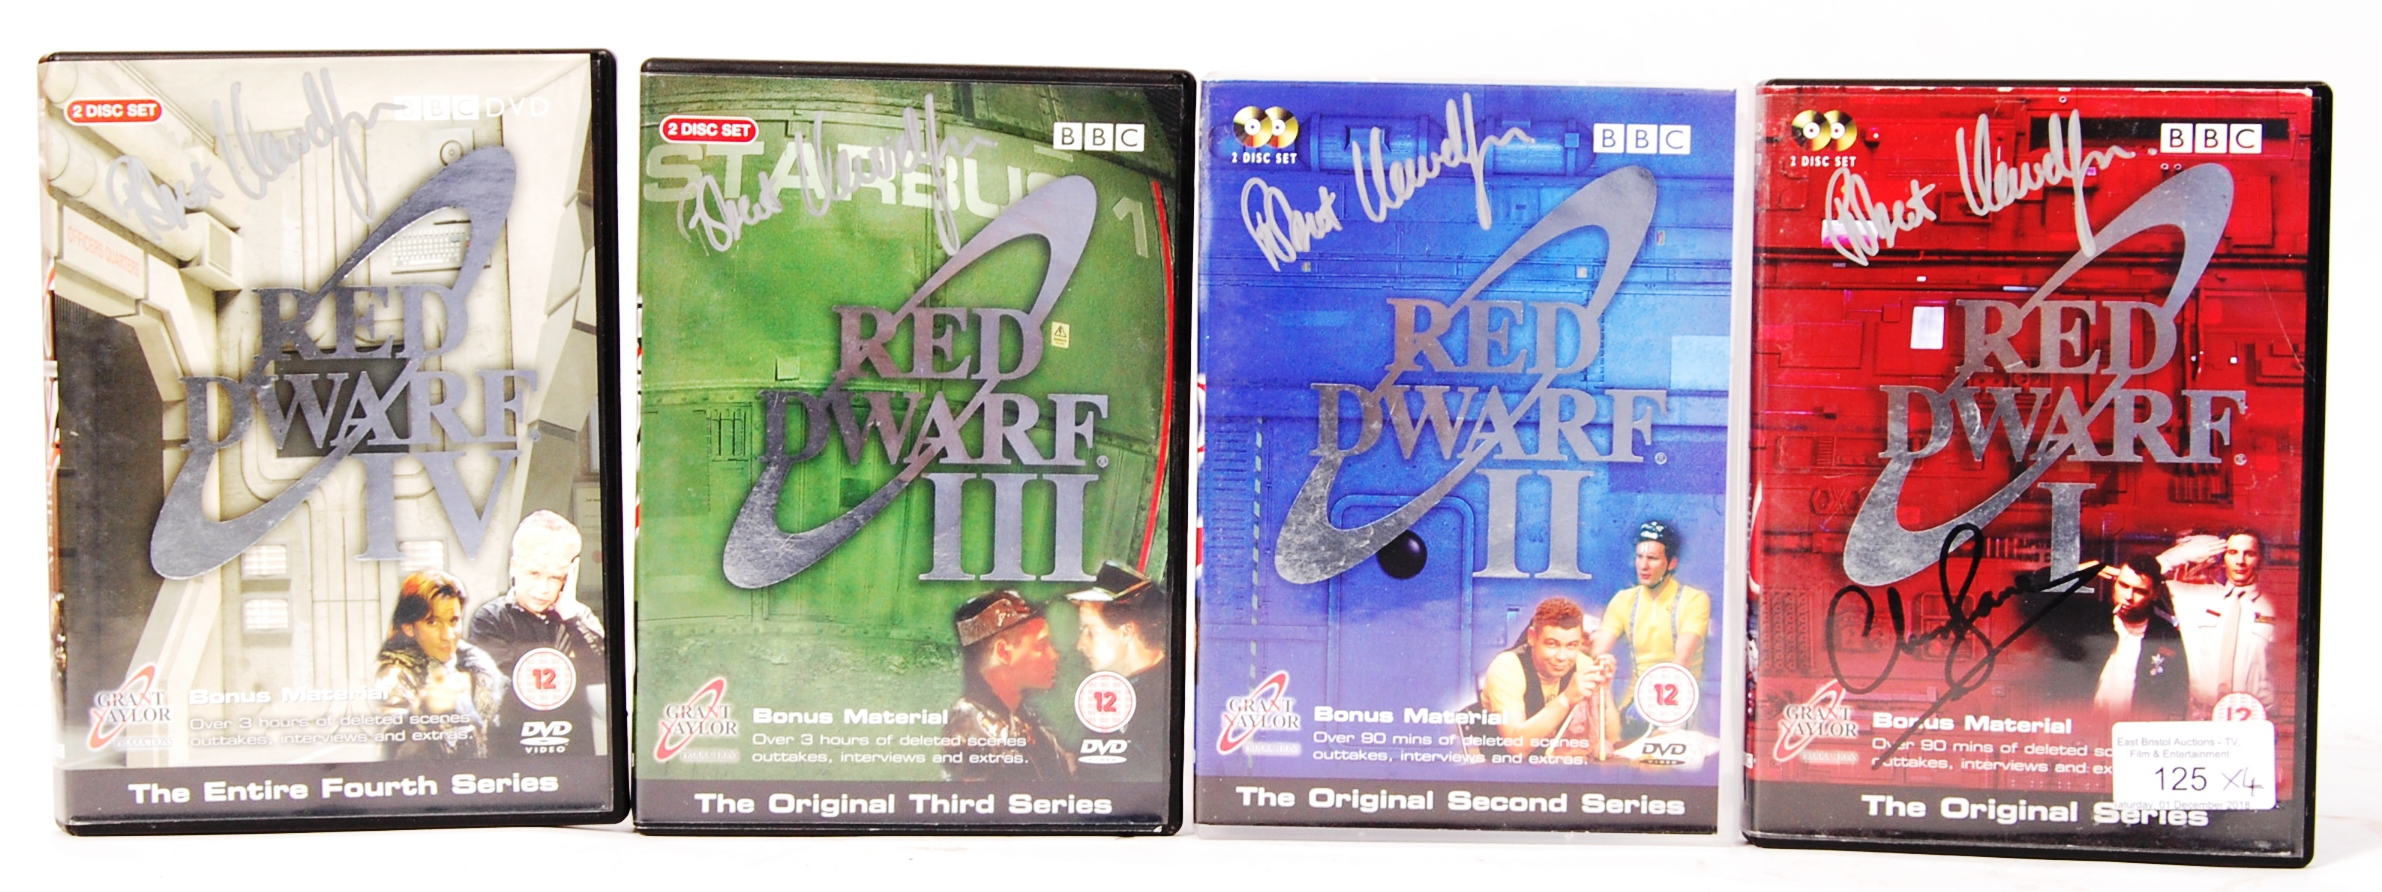 Lot 49 - RED DWARF SERIES 1-4 AUTOGRAPHED DVD COLLECTION